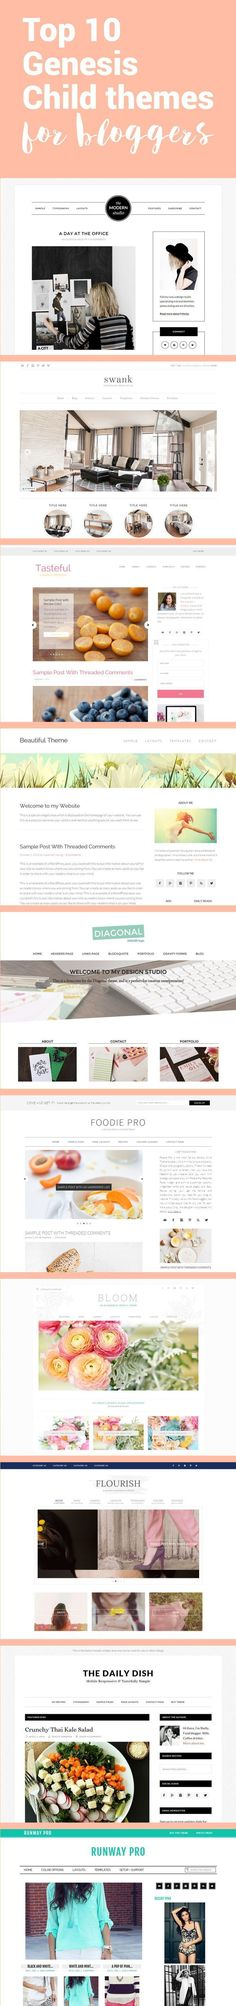 Use one of these wordpress themes for your new blog. Stylish, responsive, and fast.